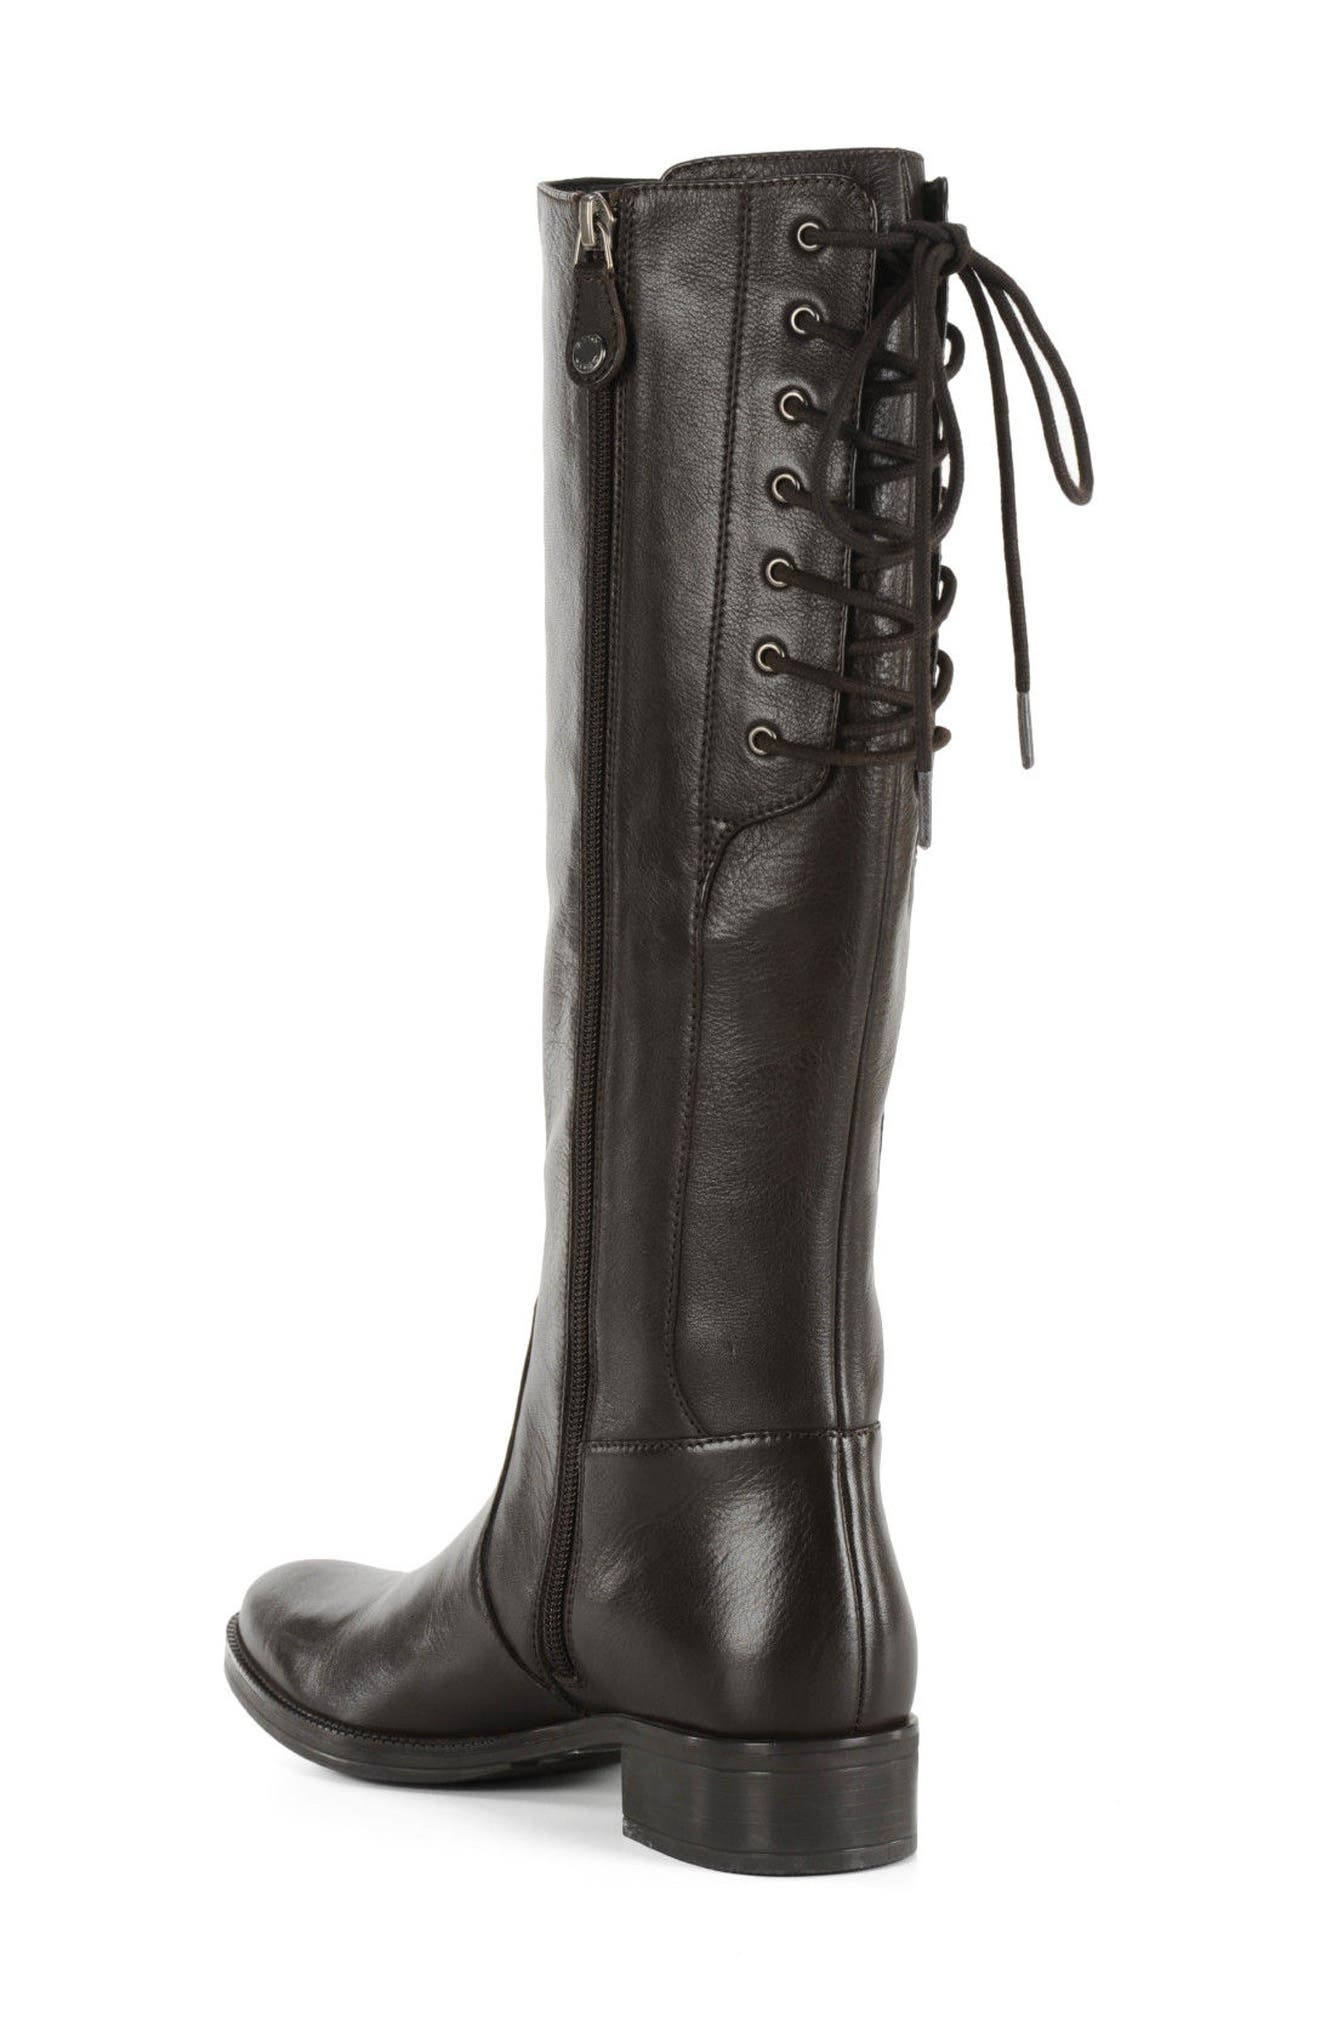 Mendi Tall Boot,                             Alternate thumbnail 2, color,                             Coffee Leather